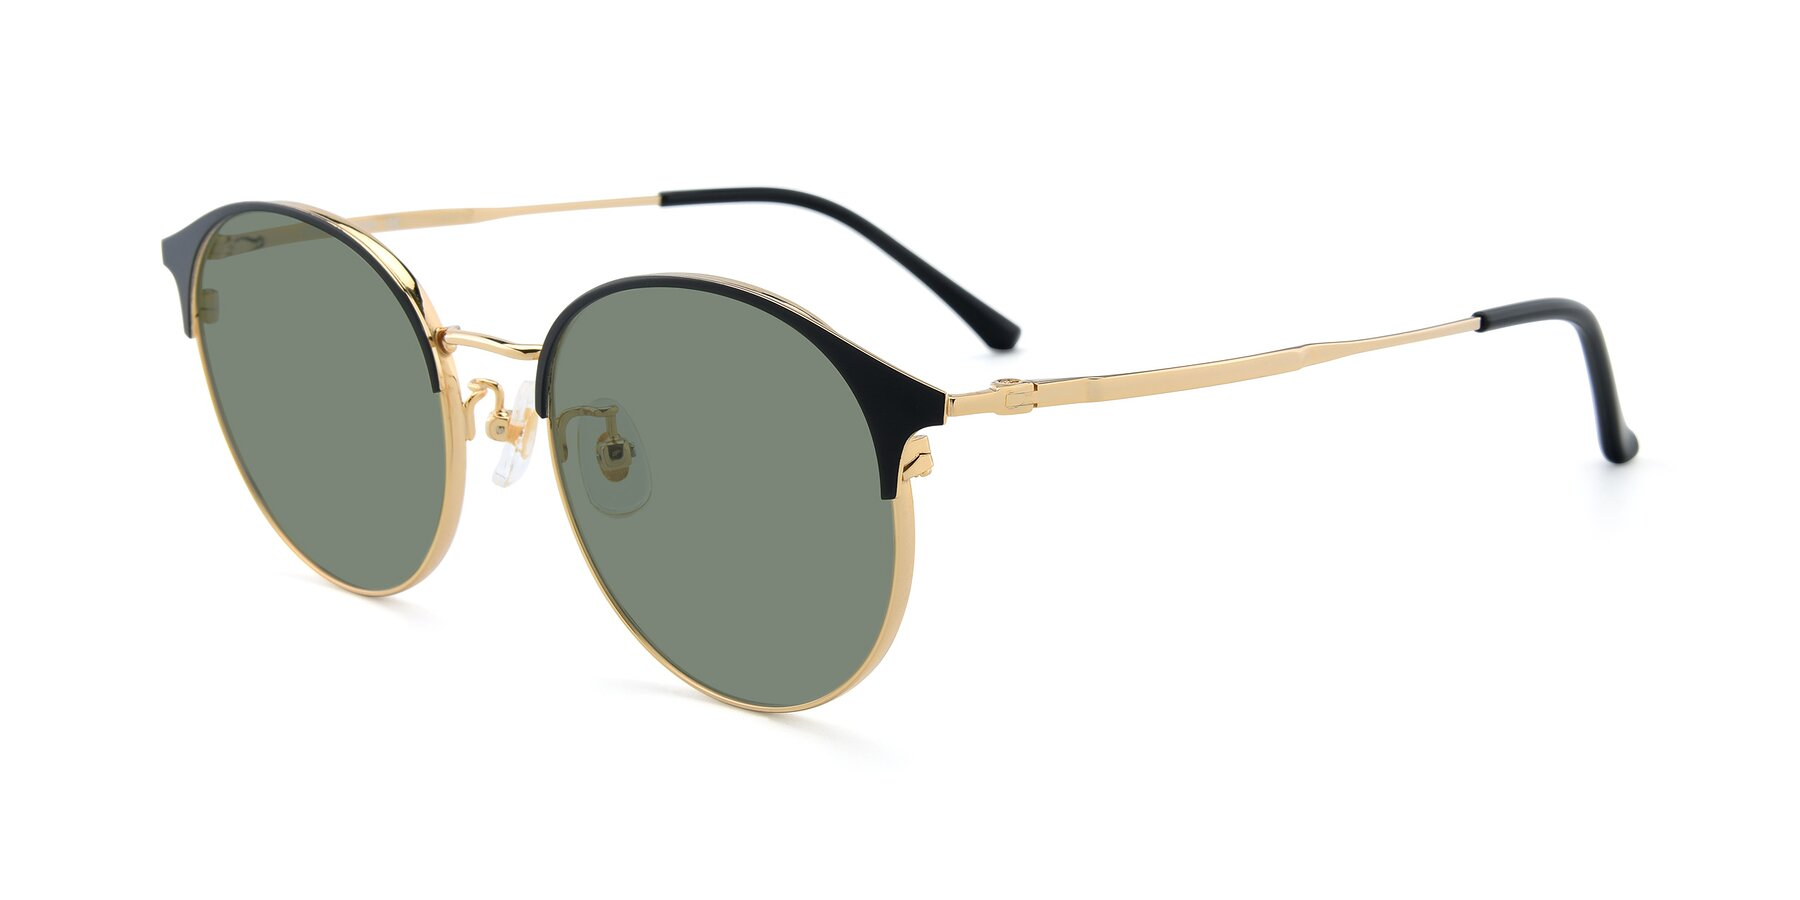 Angle of XC-8031 in Black-Gold with Medium Green Tinted Lenses